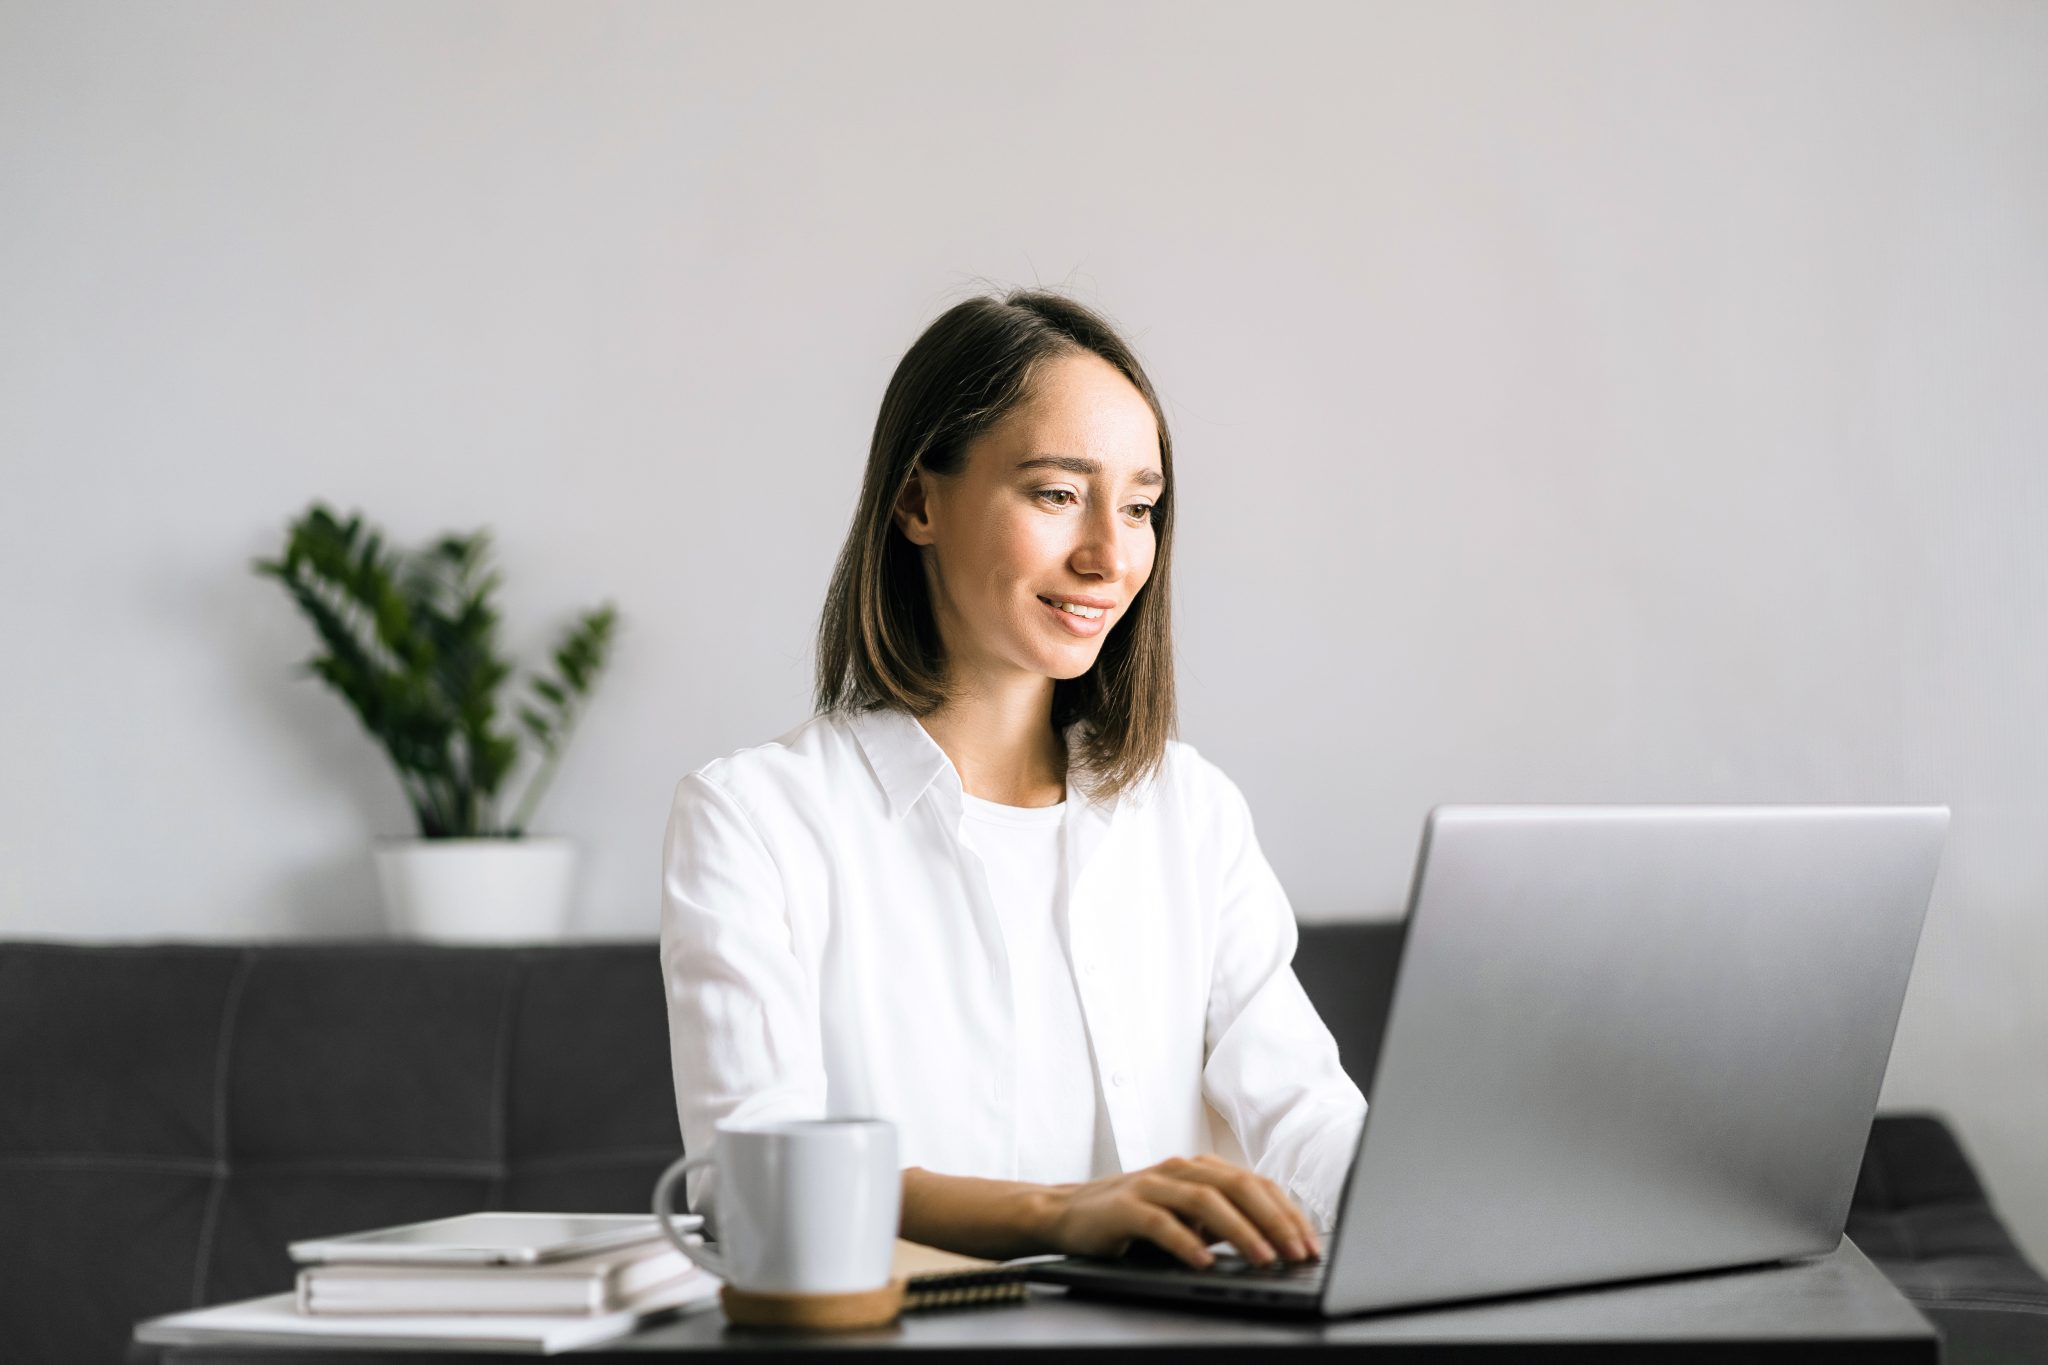 Young woman sitting at the table and using laptop.